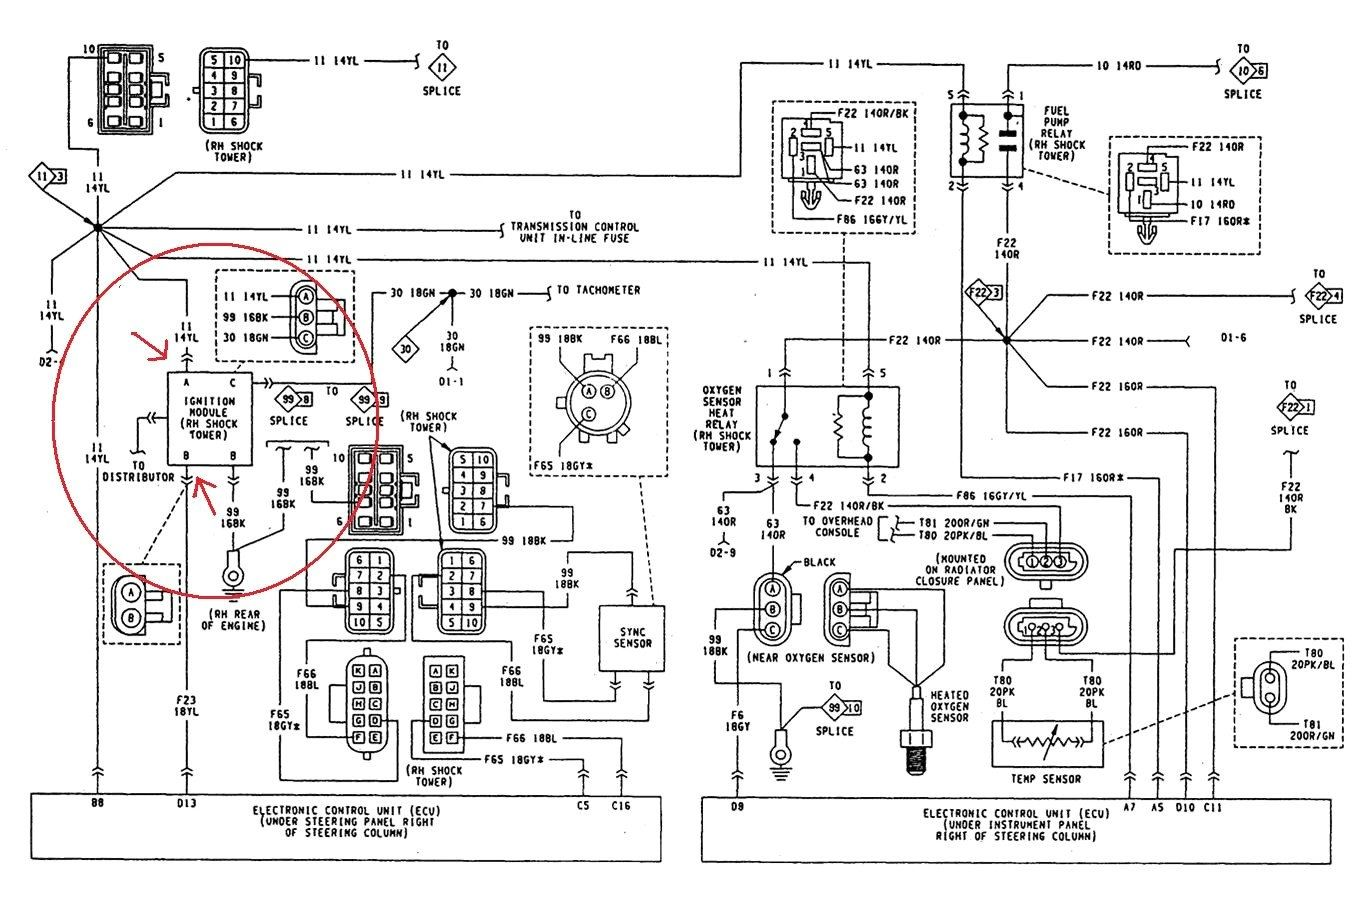 hight resolution of 1990 jeep yj vacuum diagram 1990 jeep wrangler 4 2 vacuum diagram1990 jeep yj vacuum diagram